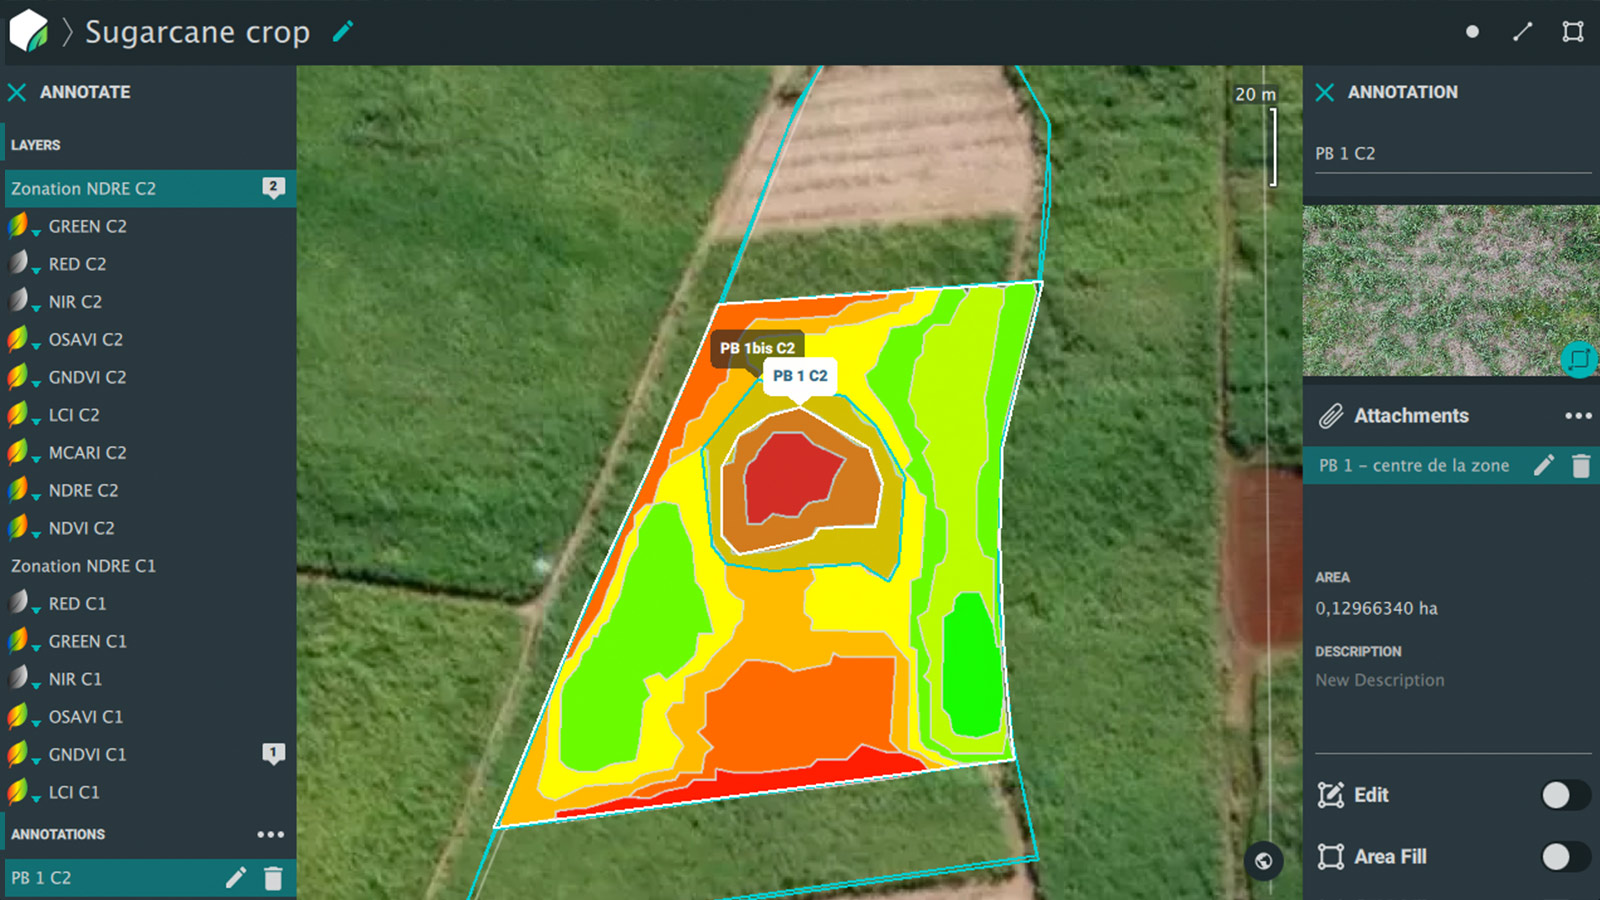 Pix4Dfields zonation map showing different levels of crop damage